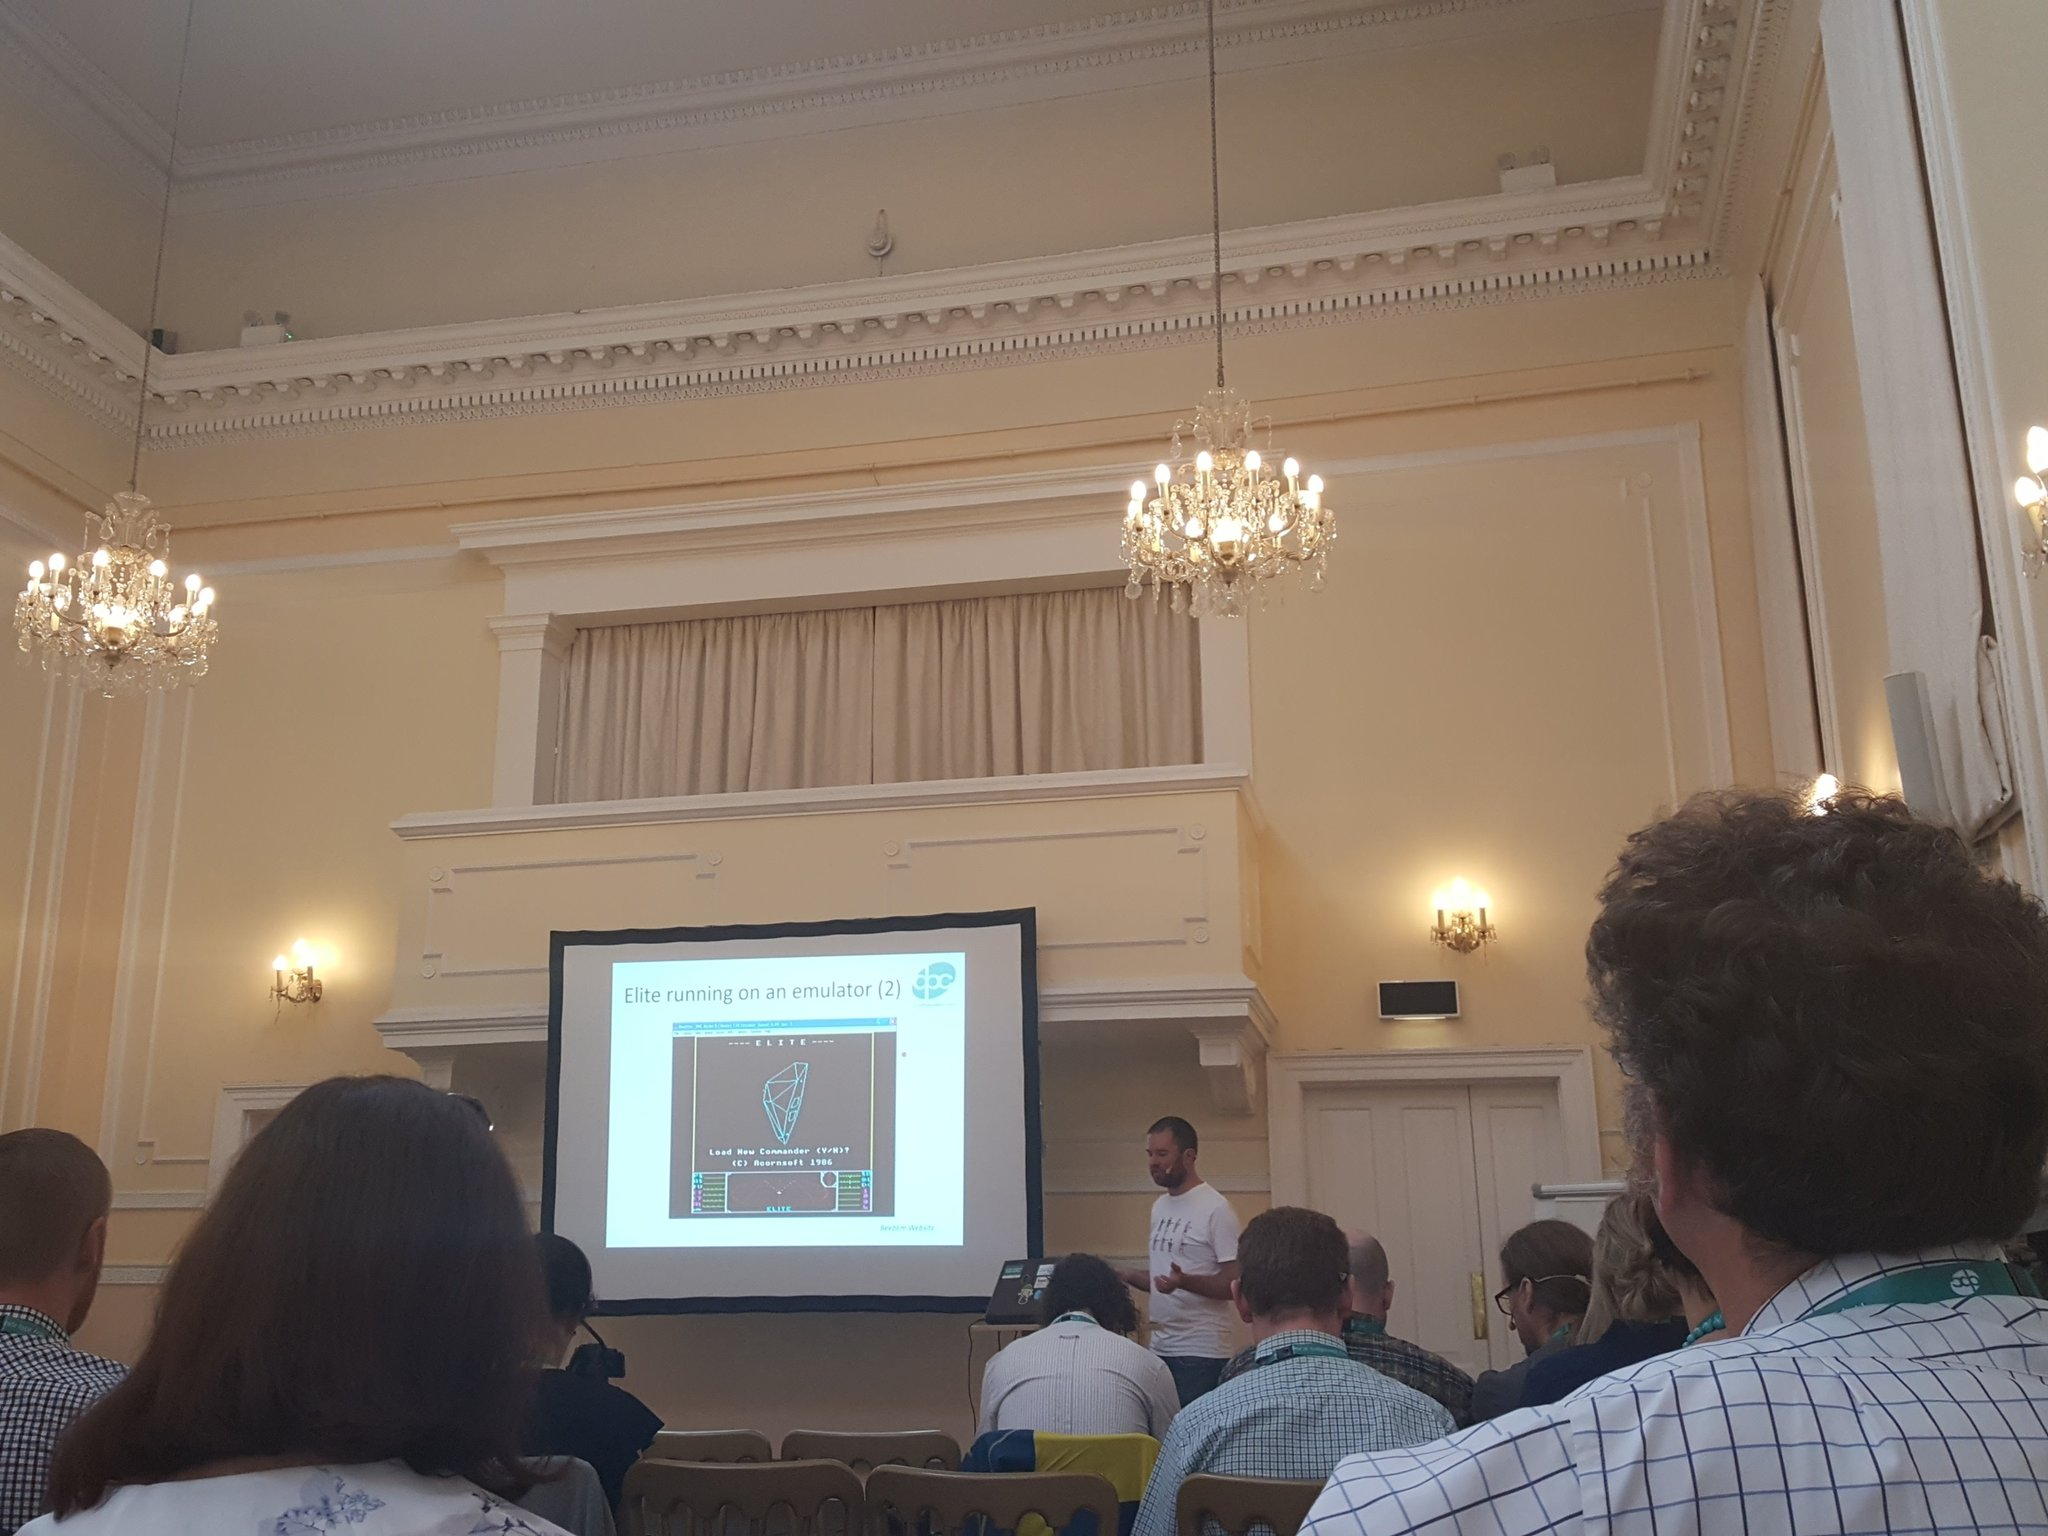 .@prwheatley walks us through a history of emulation for #digipres at today's Briefing Day in York #DPC_emulate https://t.co/e87VMmV9x0